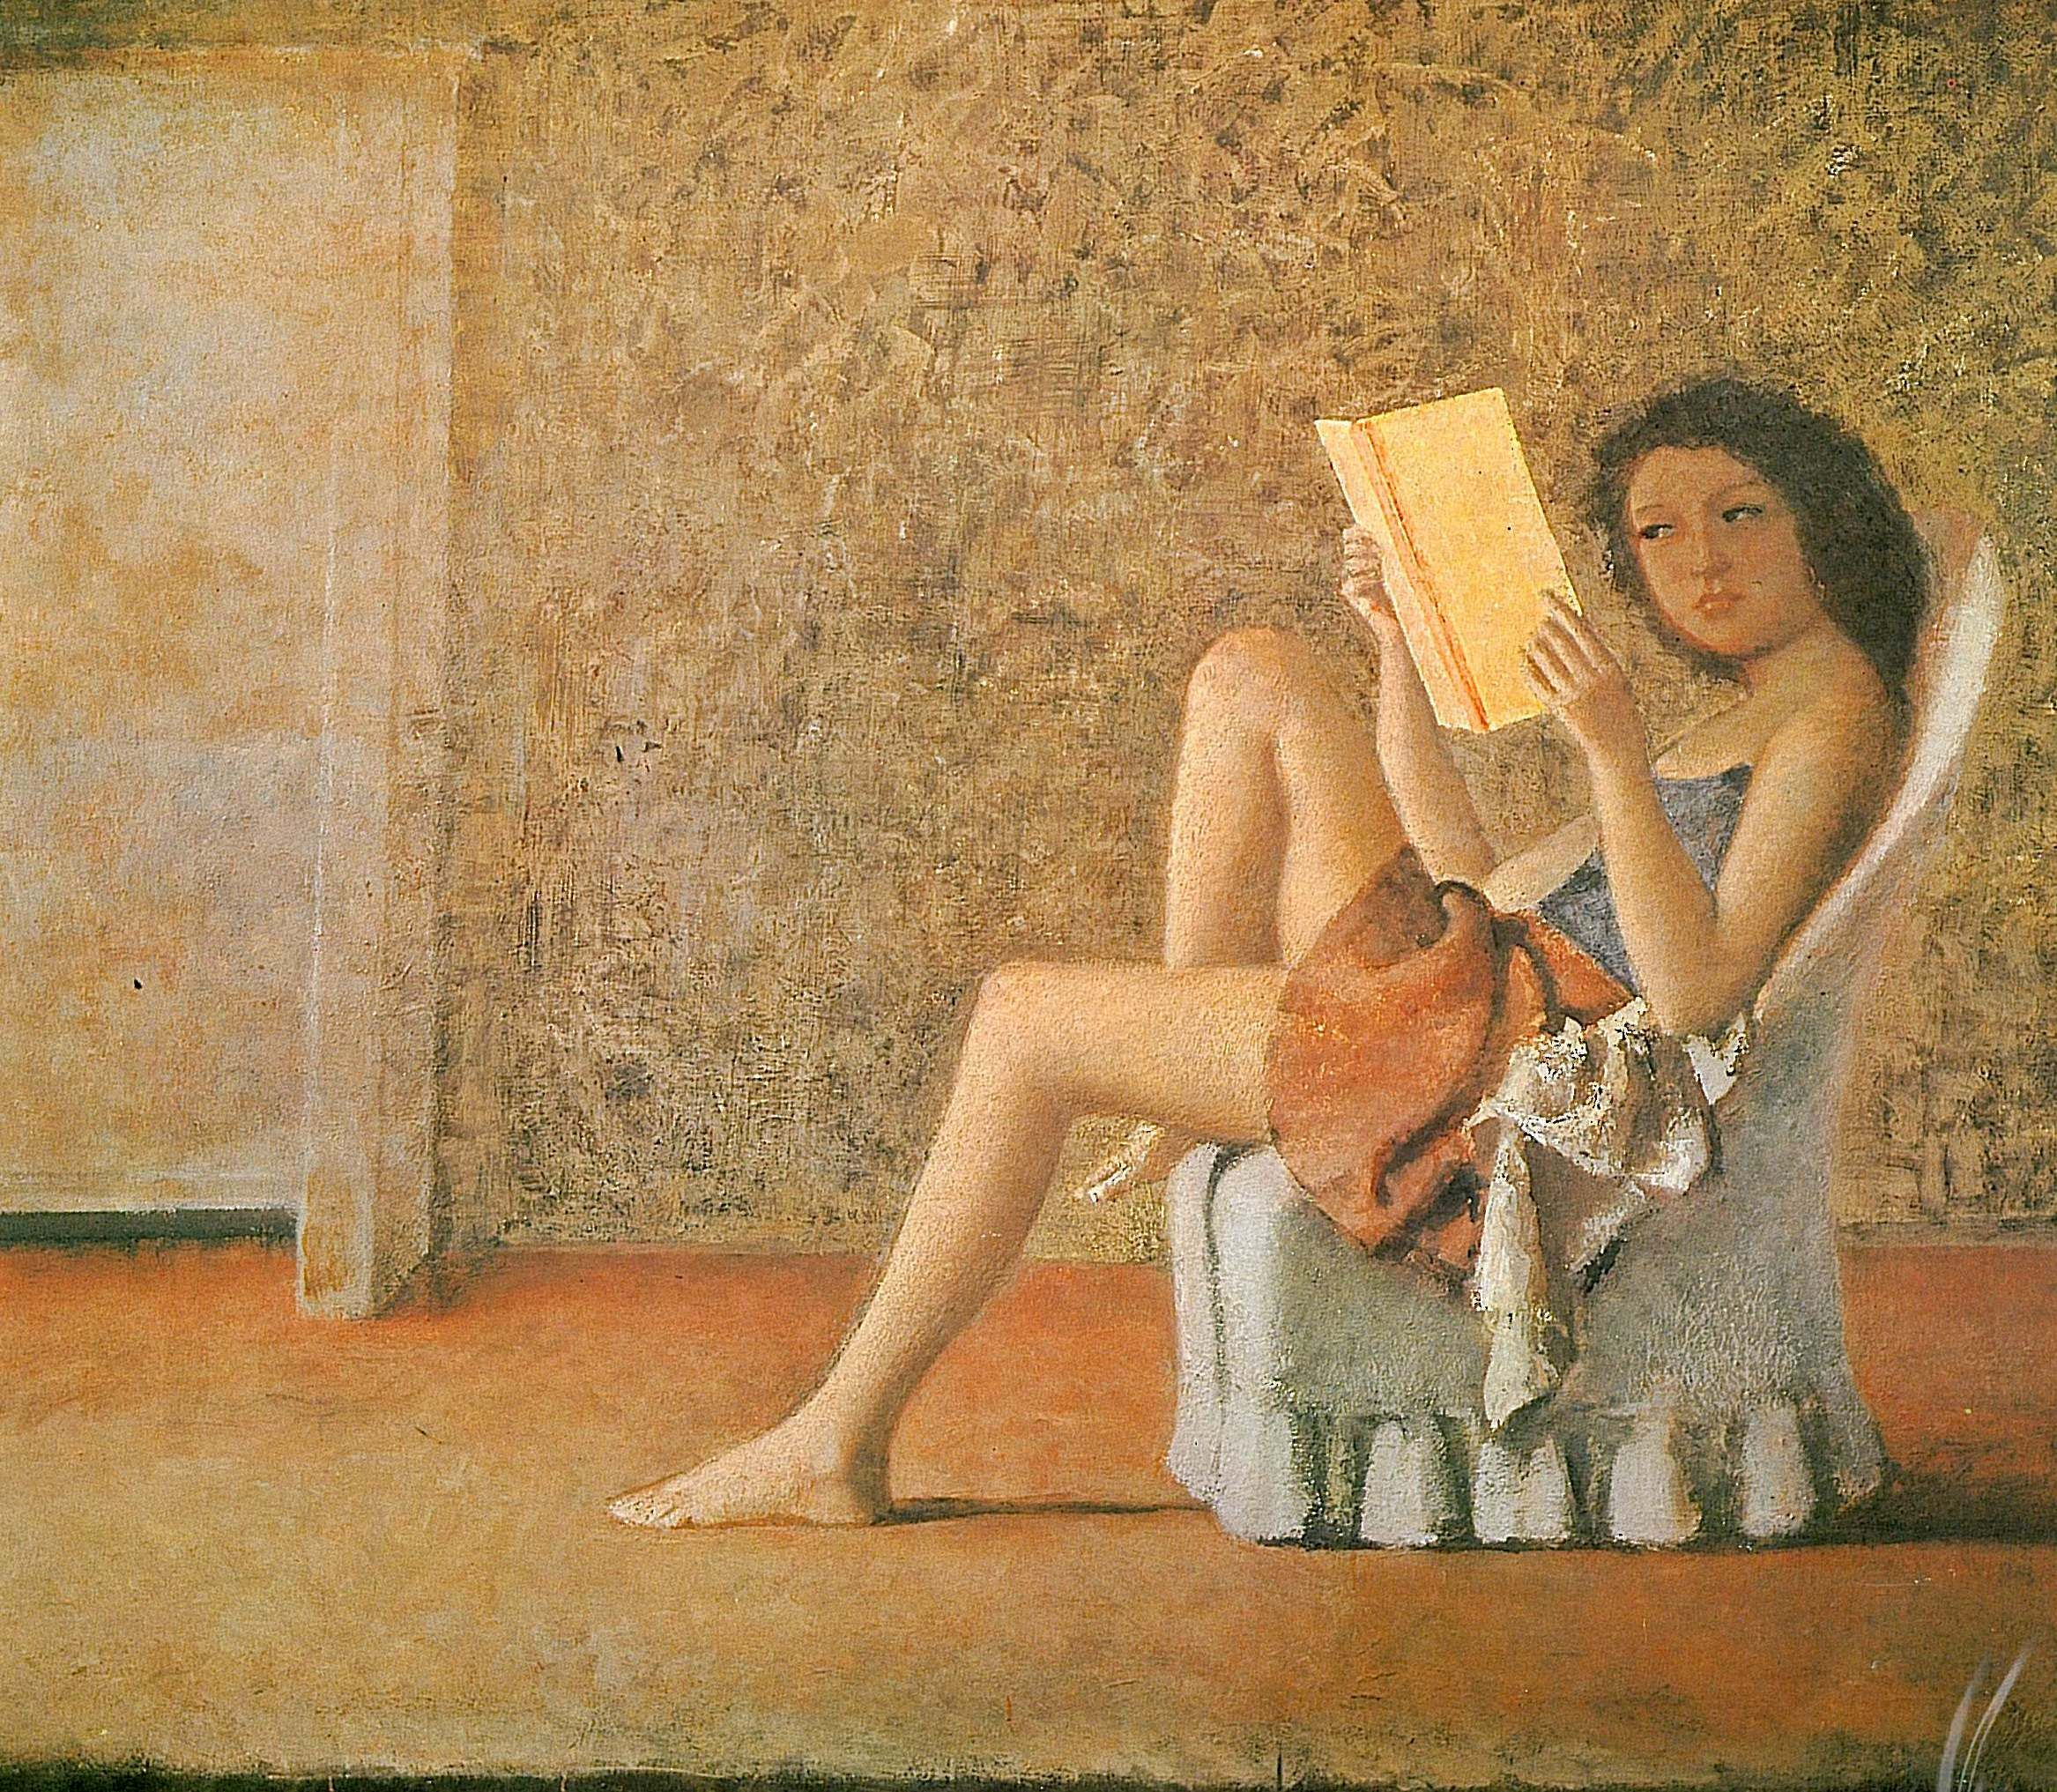 La Chambre Turque Balthus Katia Reading Balthus Art Art Erotic Art Reading Art